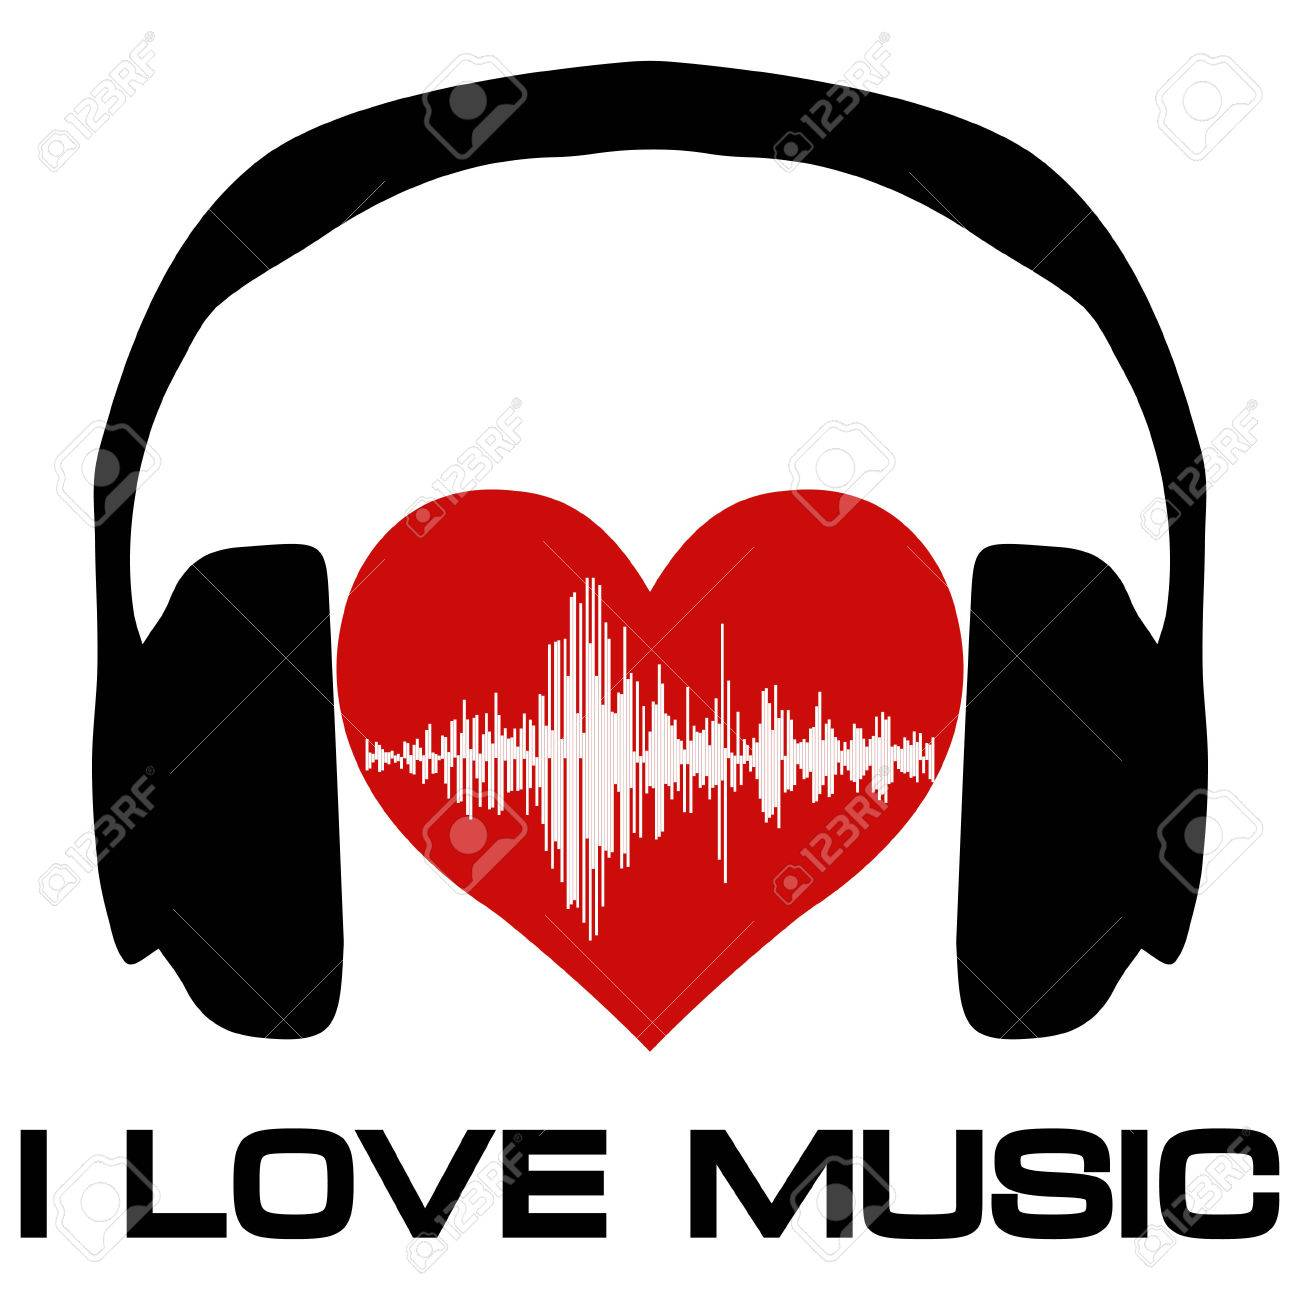 I love music, vinyl cover for a music fan poster with headphones